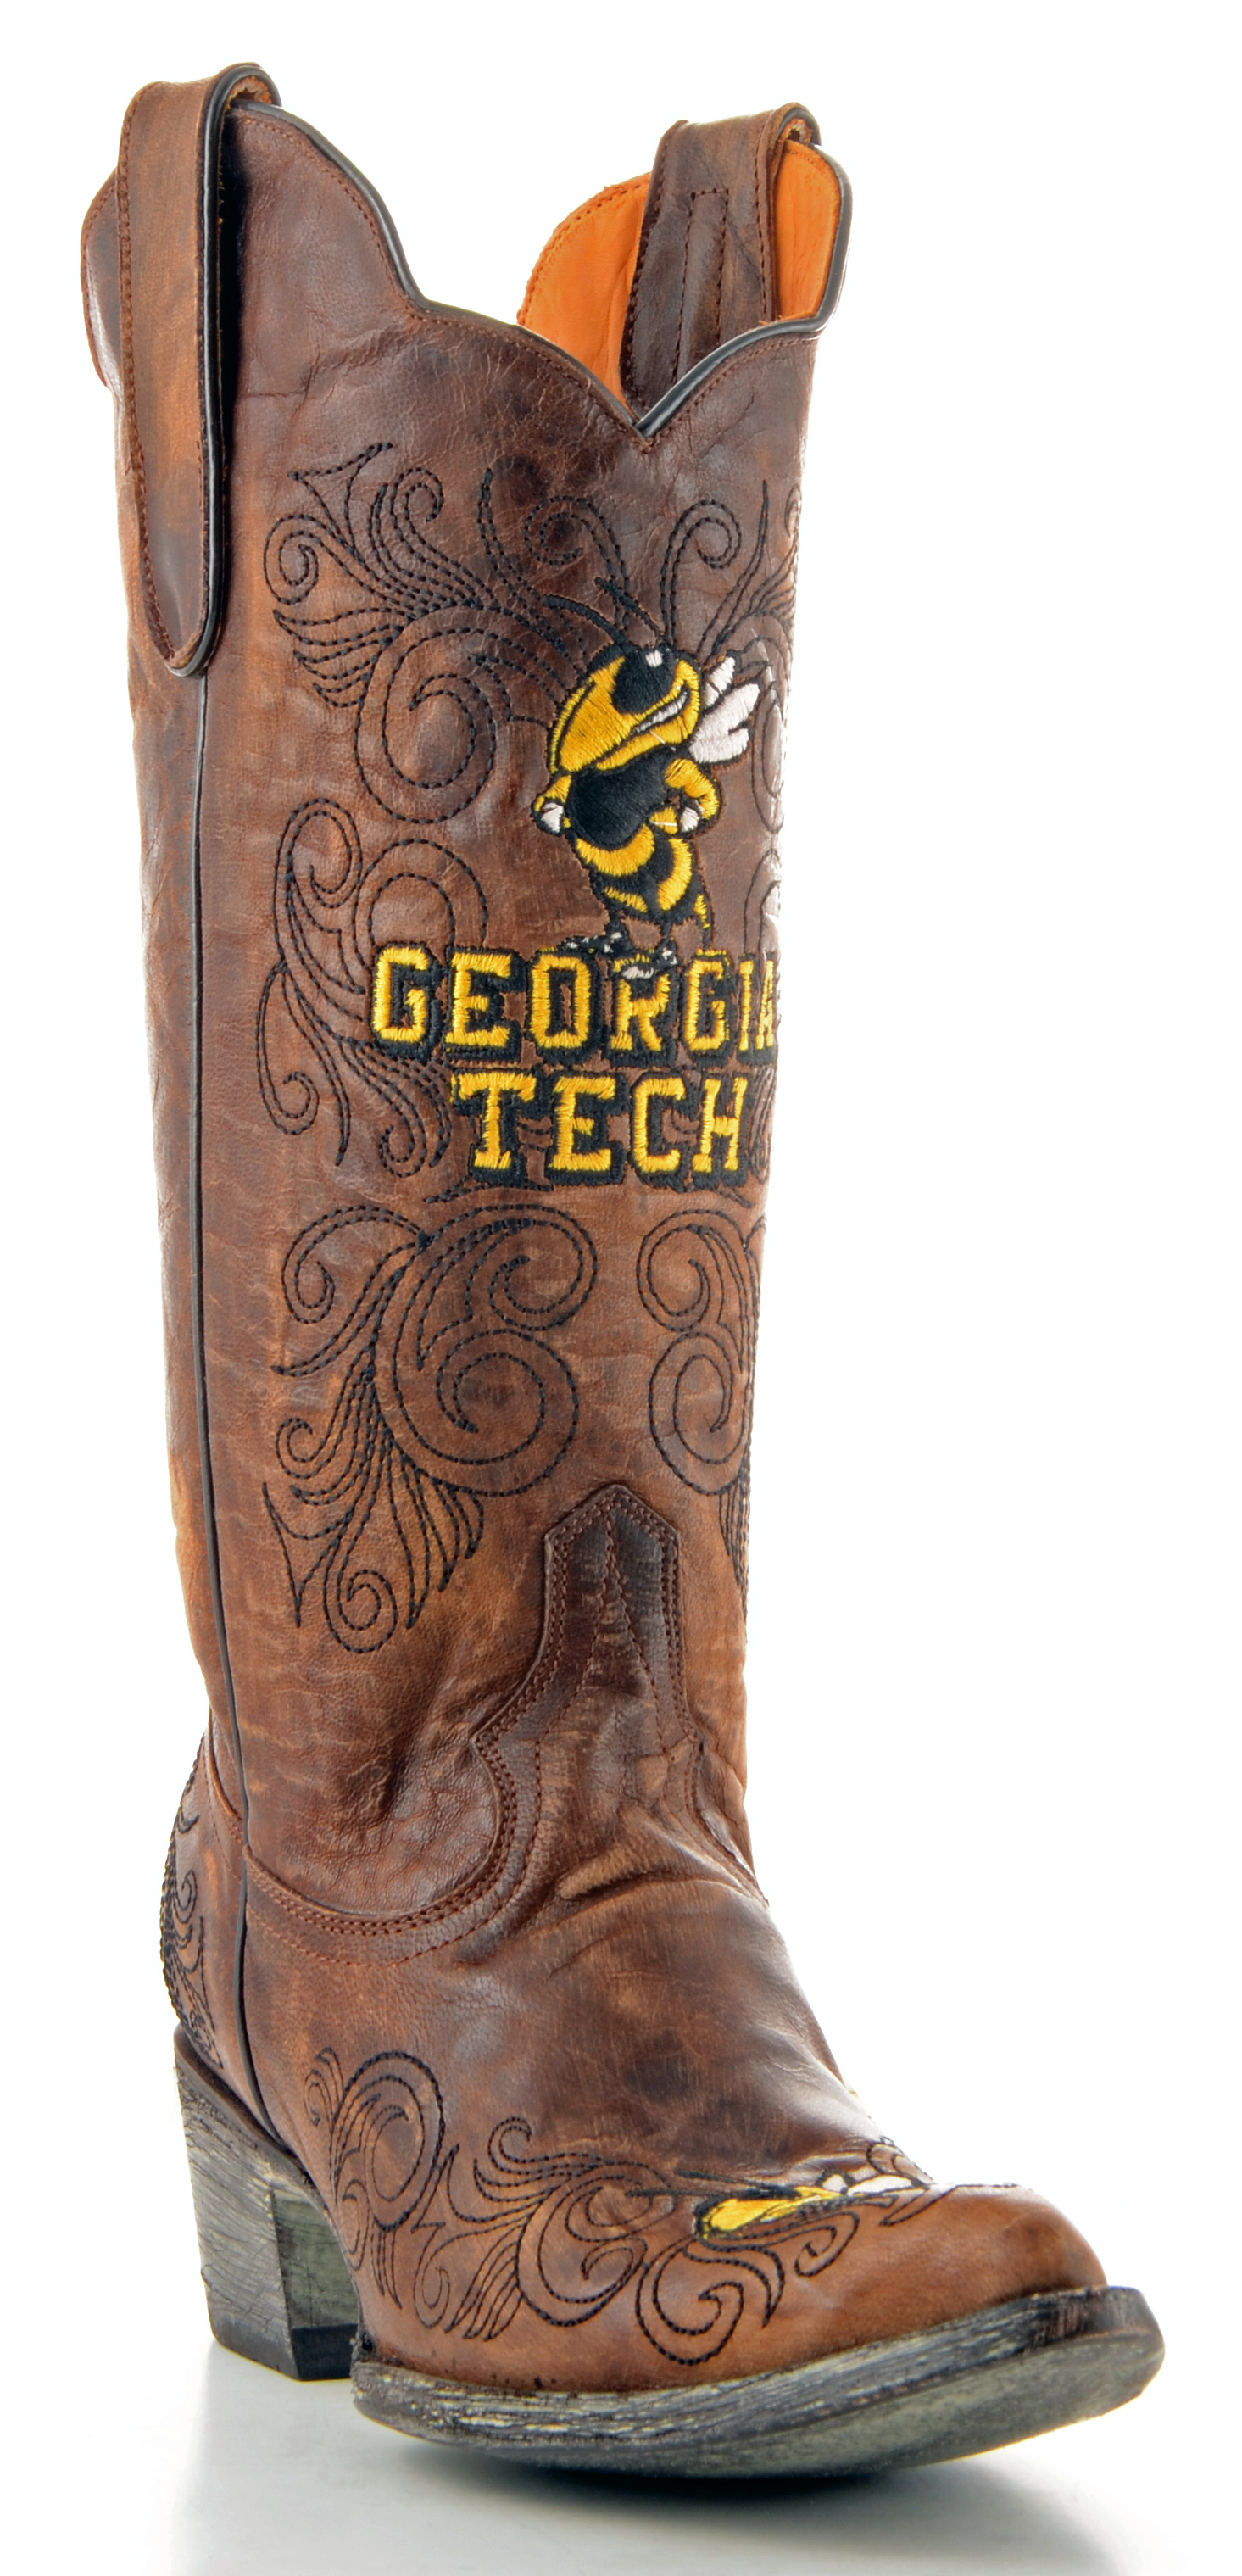 "Gameday Womens 13"" Leather Georgia Tech Cowboy Boots GT-L037 New by GameDay Boots"